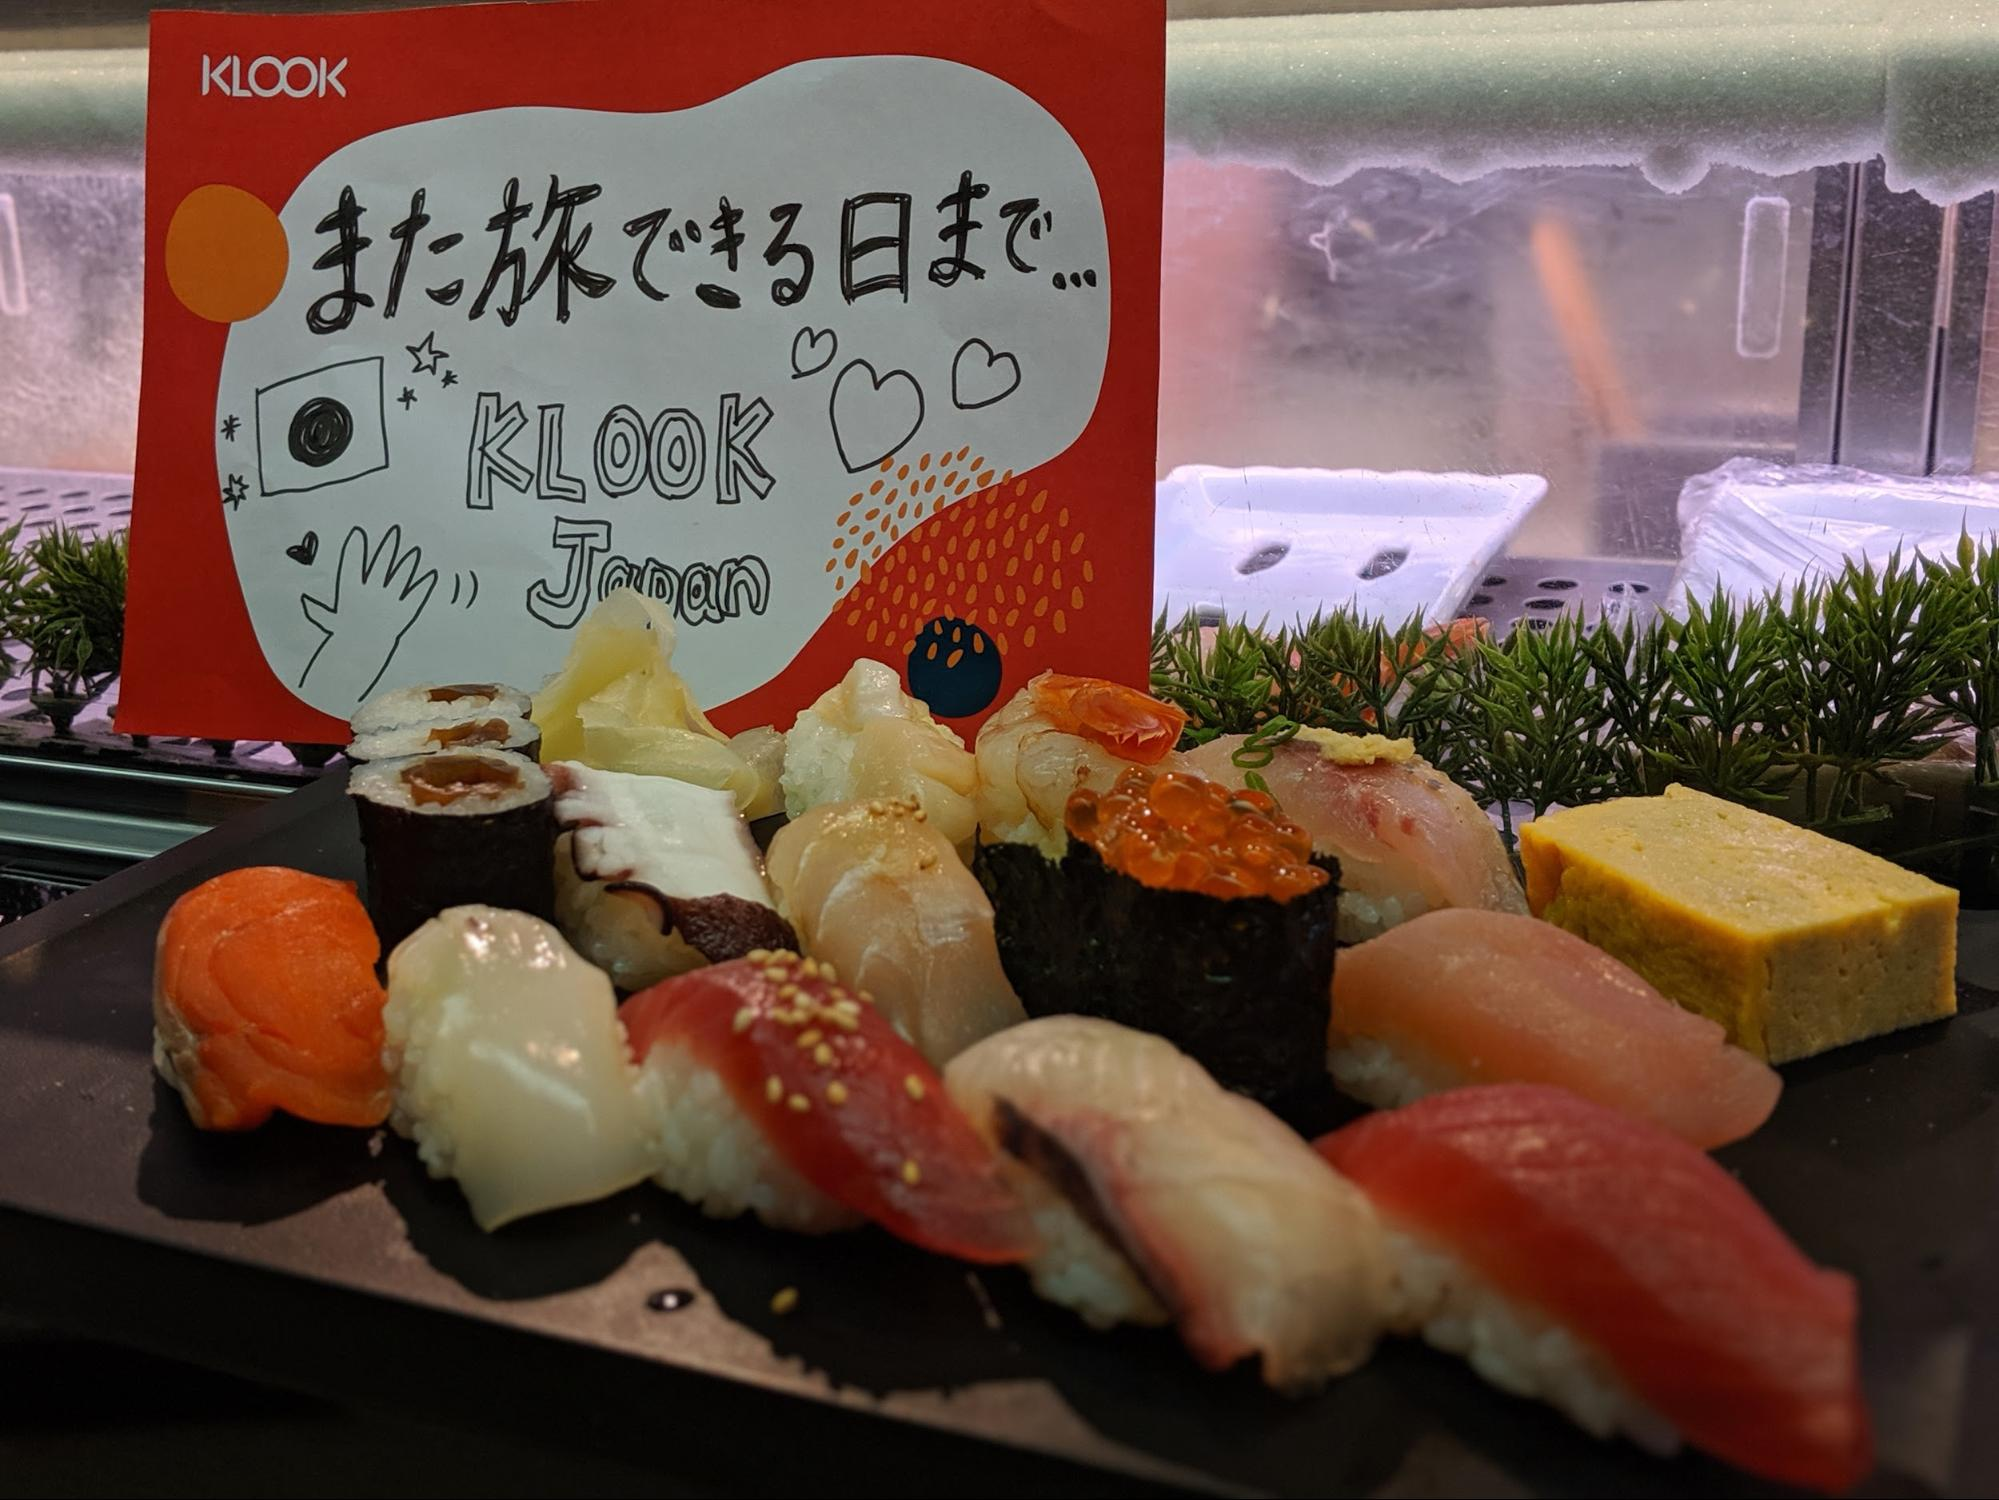 Plate of sushi in Japan